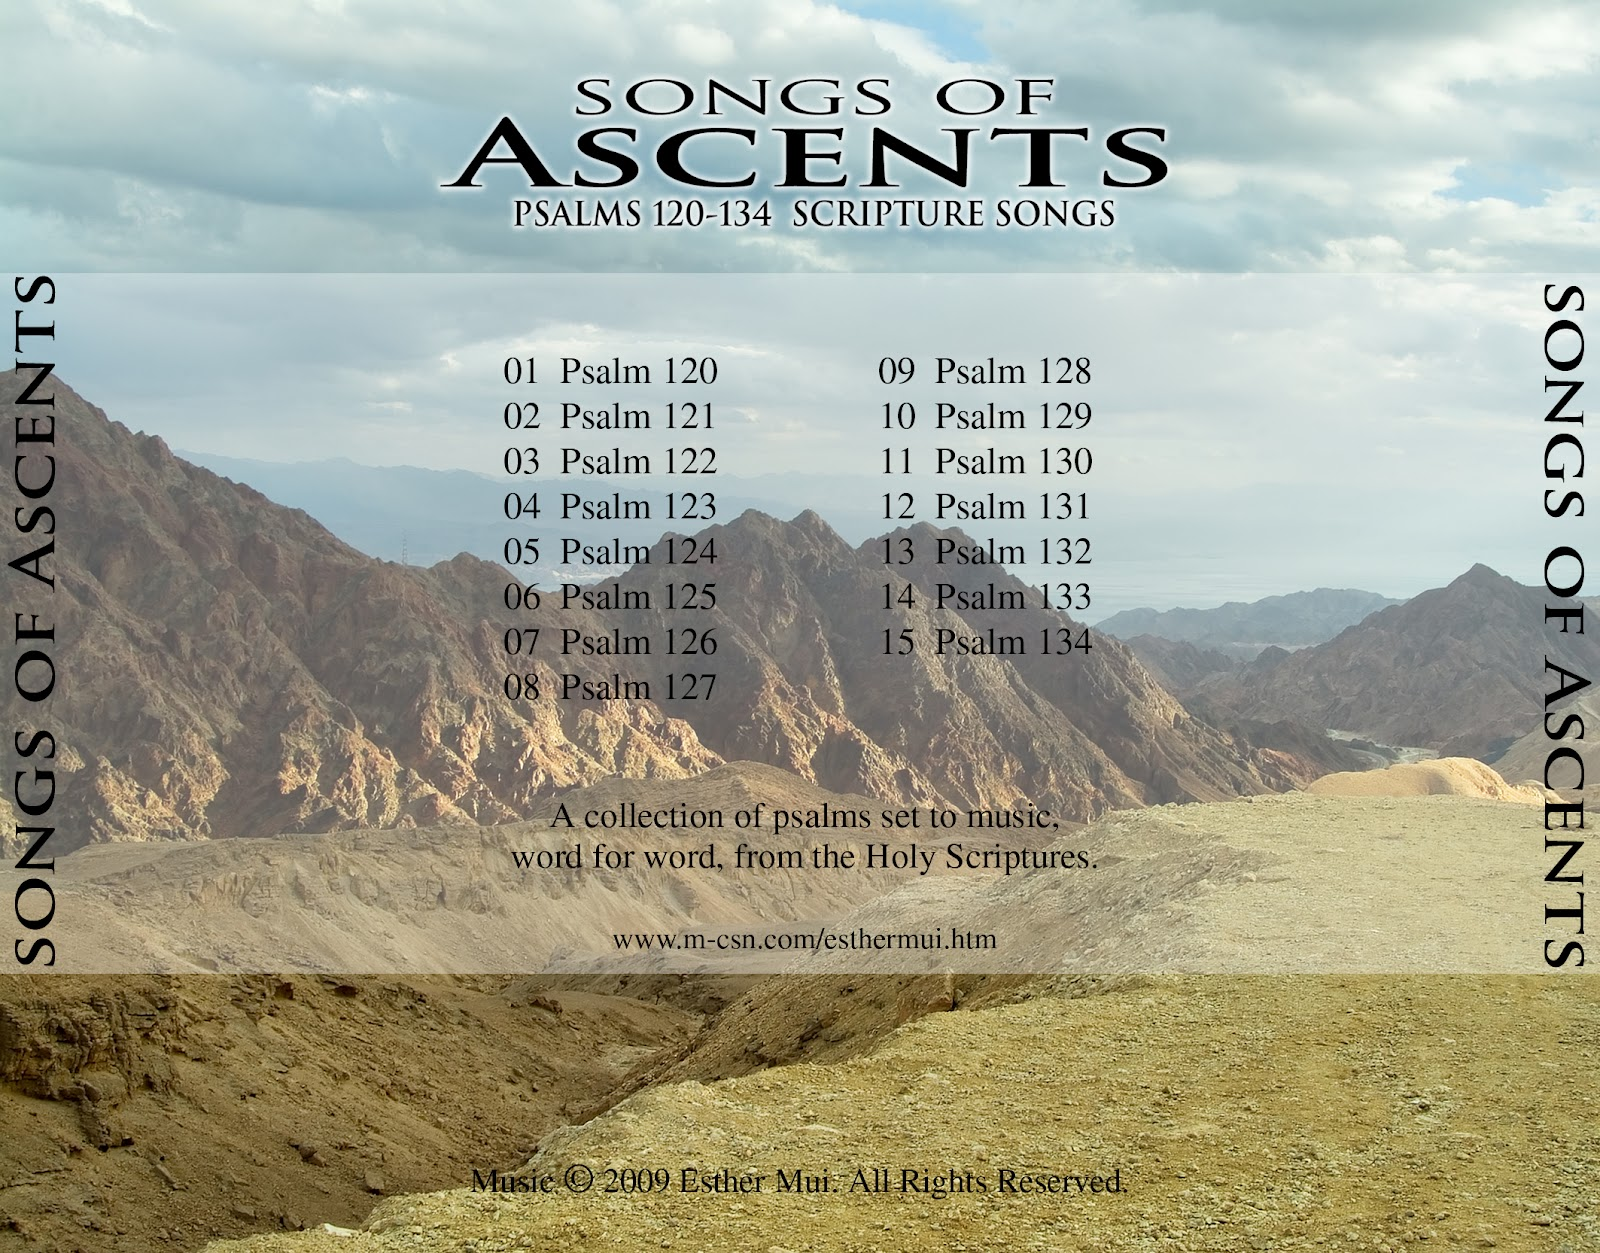 Scripture Songs for Worship : Songs of Ascents